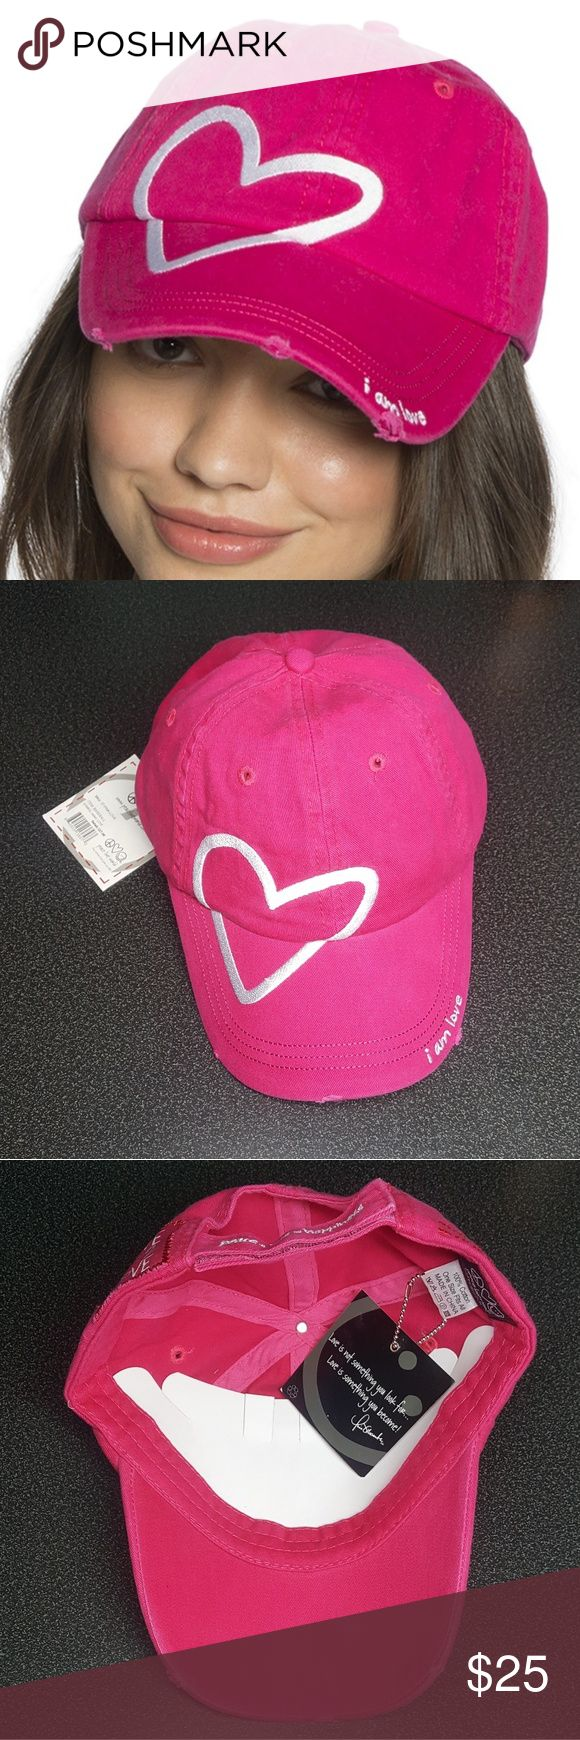 Peace Love World, Pink Baseball cap W/ Gift I AM LOVE PINK LOVE2LOVE BASEBALL CAP Brand new never been used, still has original tag. Small tears on the front of the cap come with original purchase. That is how the cap was made.  GIFT: 3 Bracelets PLW or 1 PLW sticker of your choice!  SKU: 37PK-L or 37-PINK-LOVE Peace Love World Accessories Hats